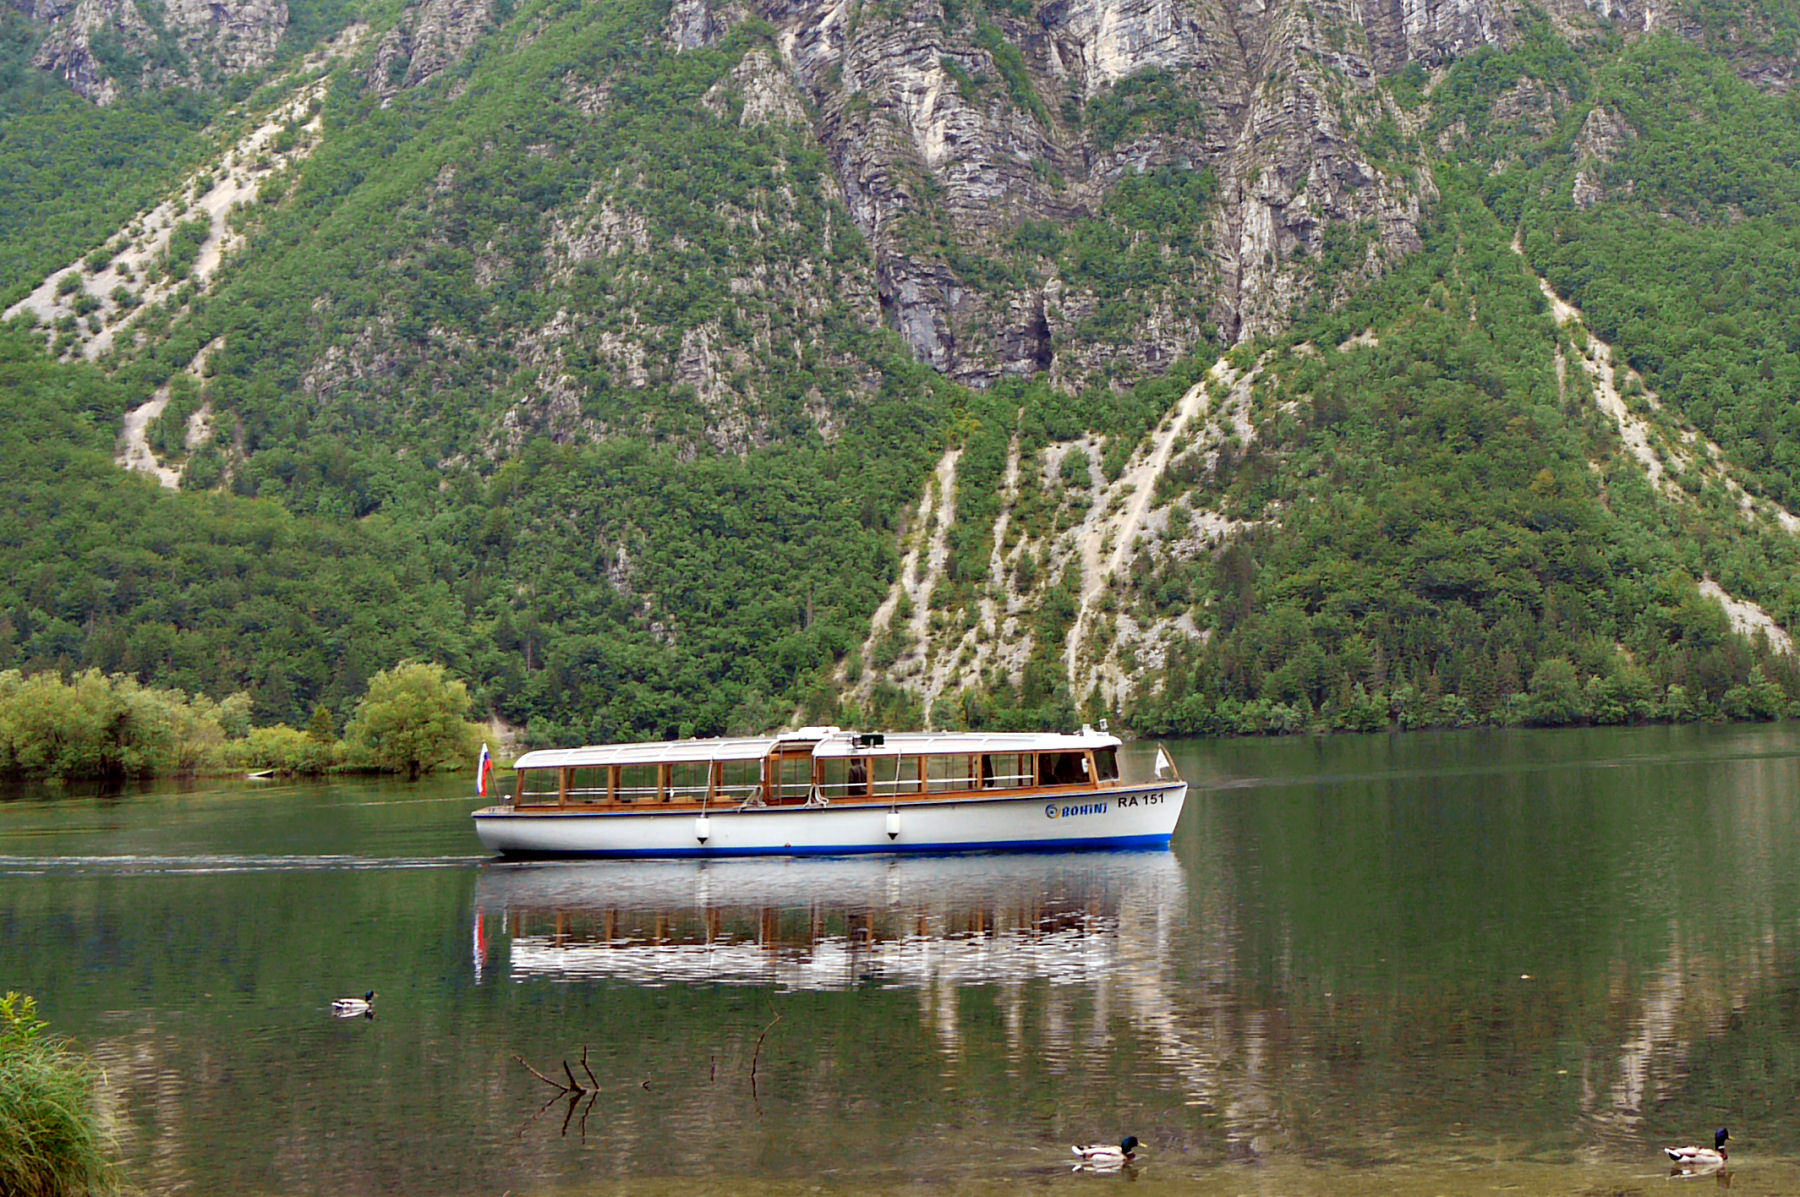 The tourist boat on Lake Bohinj is electric and environmentally friendly